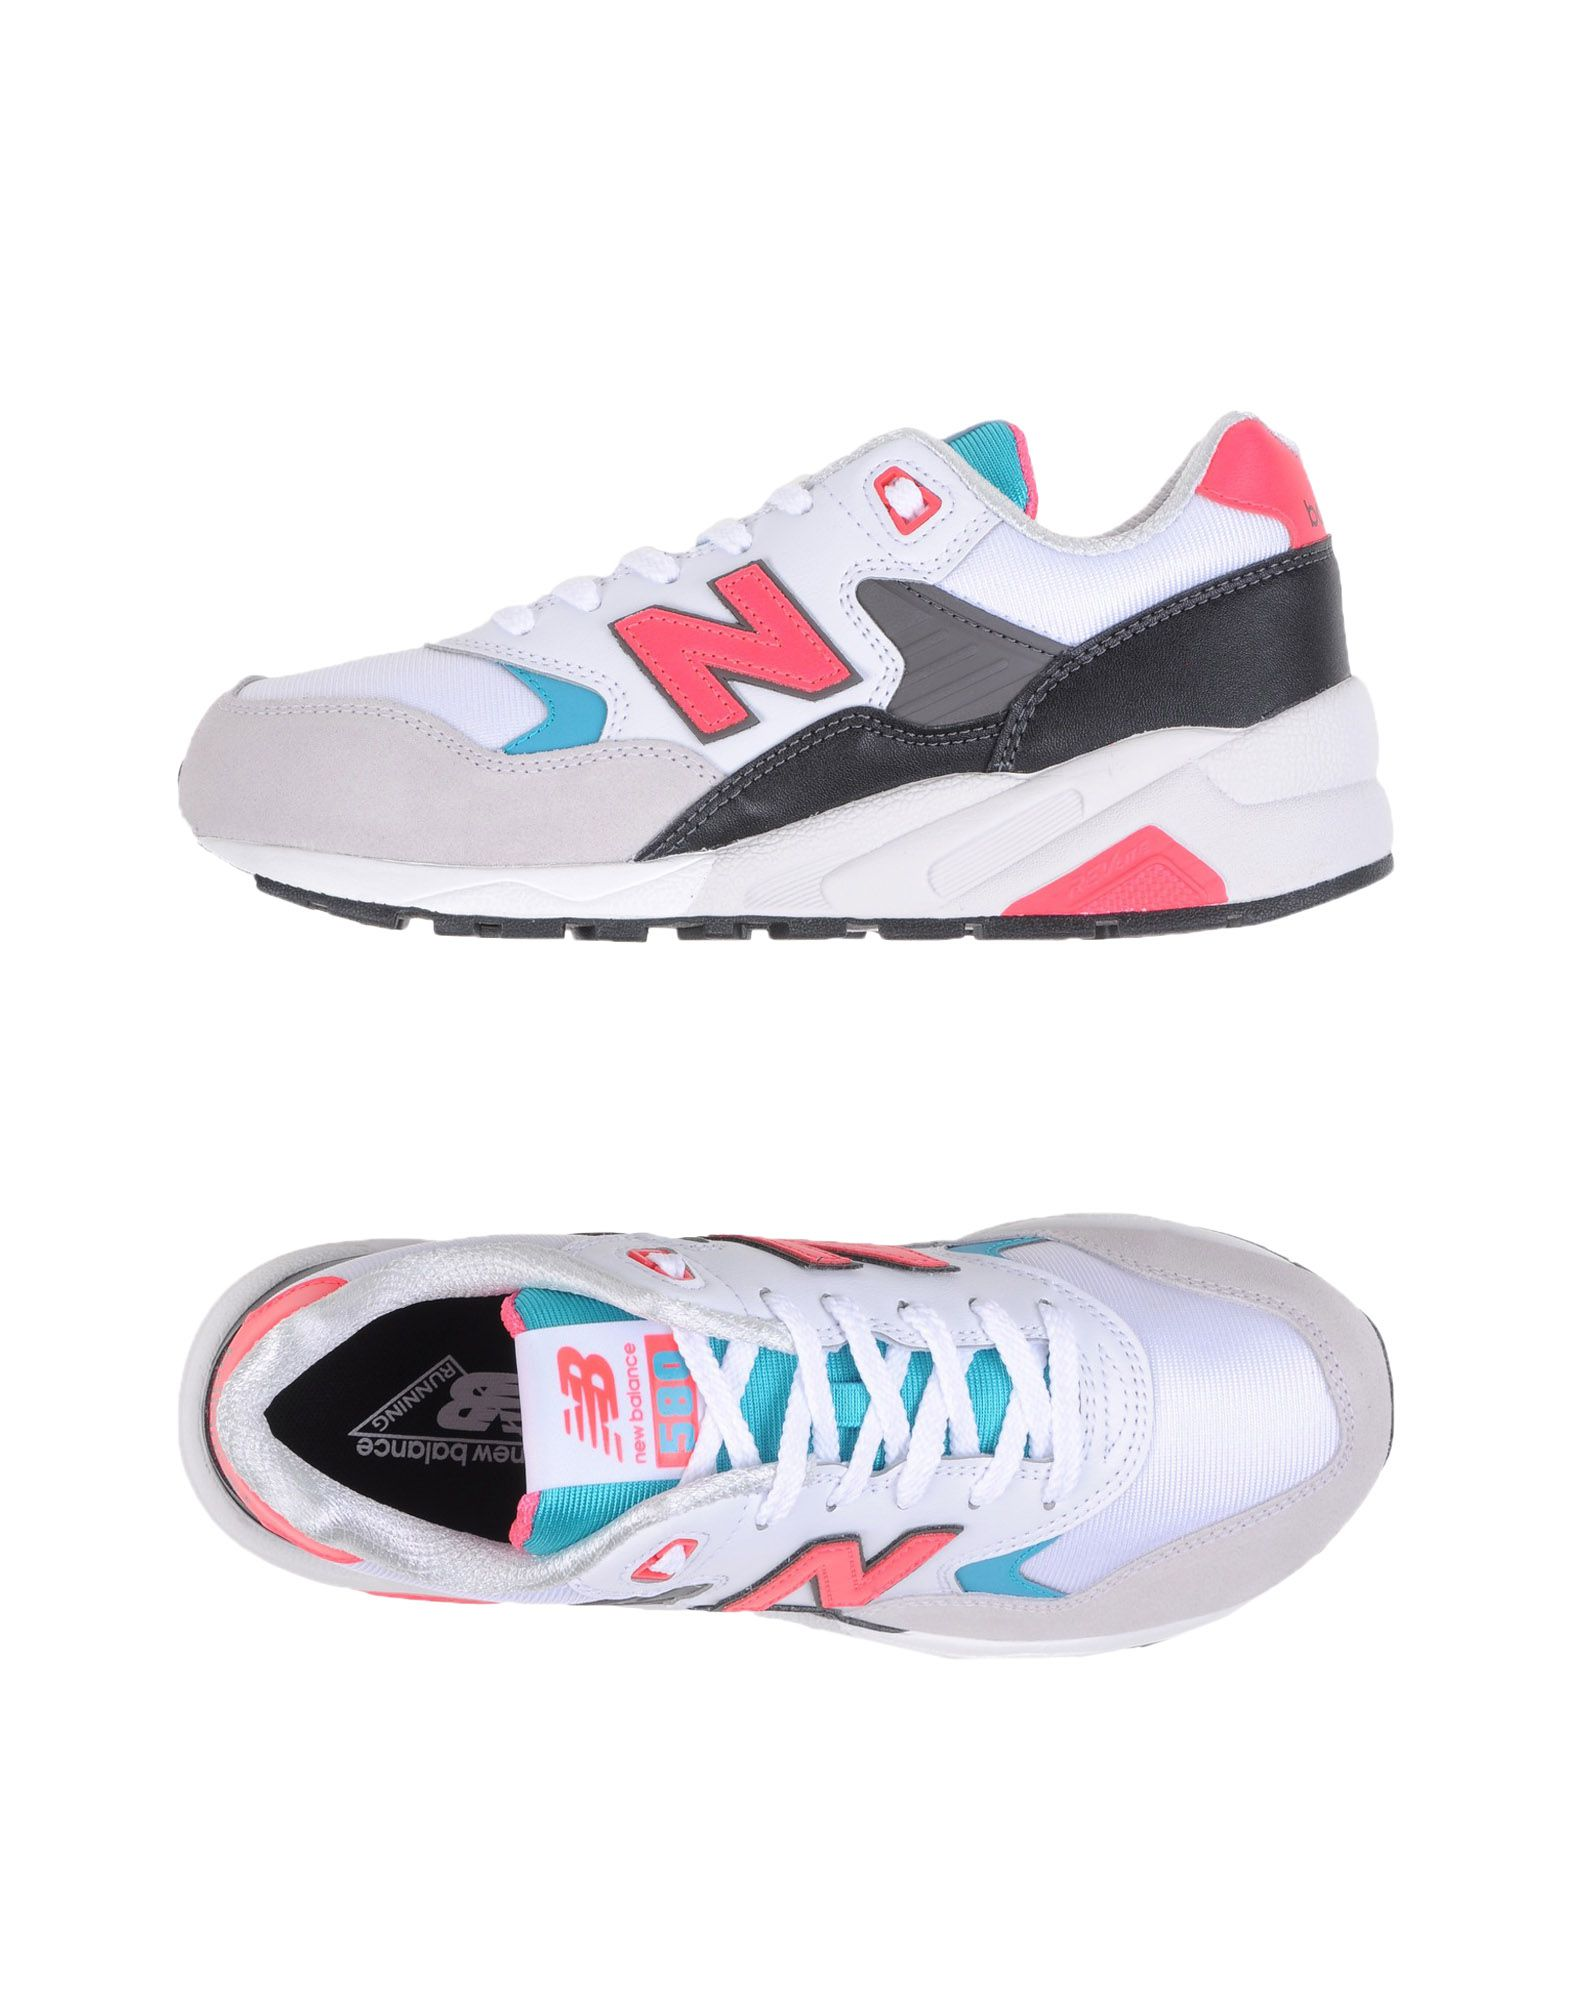 Sneakers New Balance 580 Womens 90S Heritage - Femme - Sneakers New Balance sur